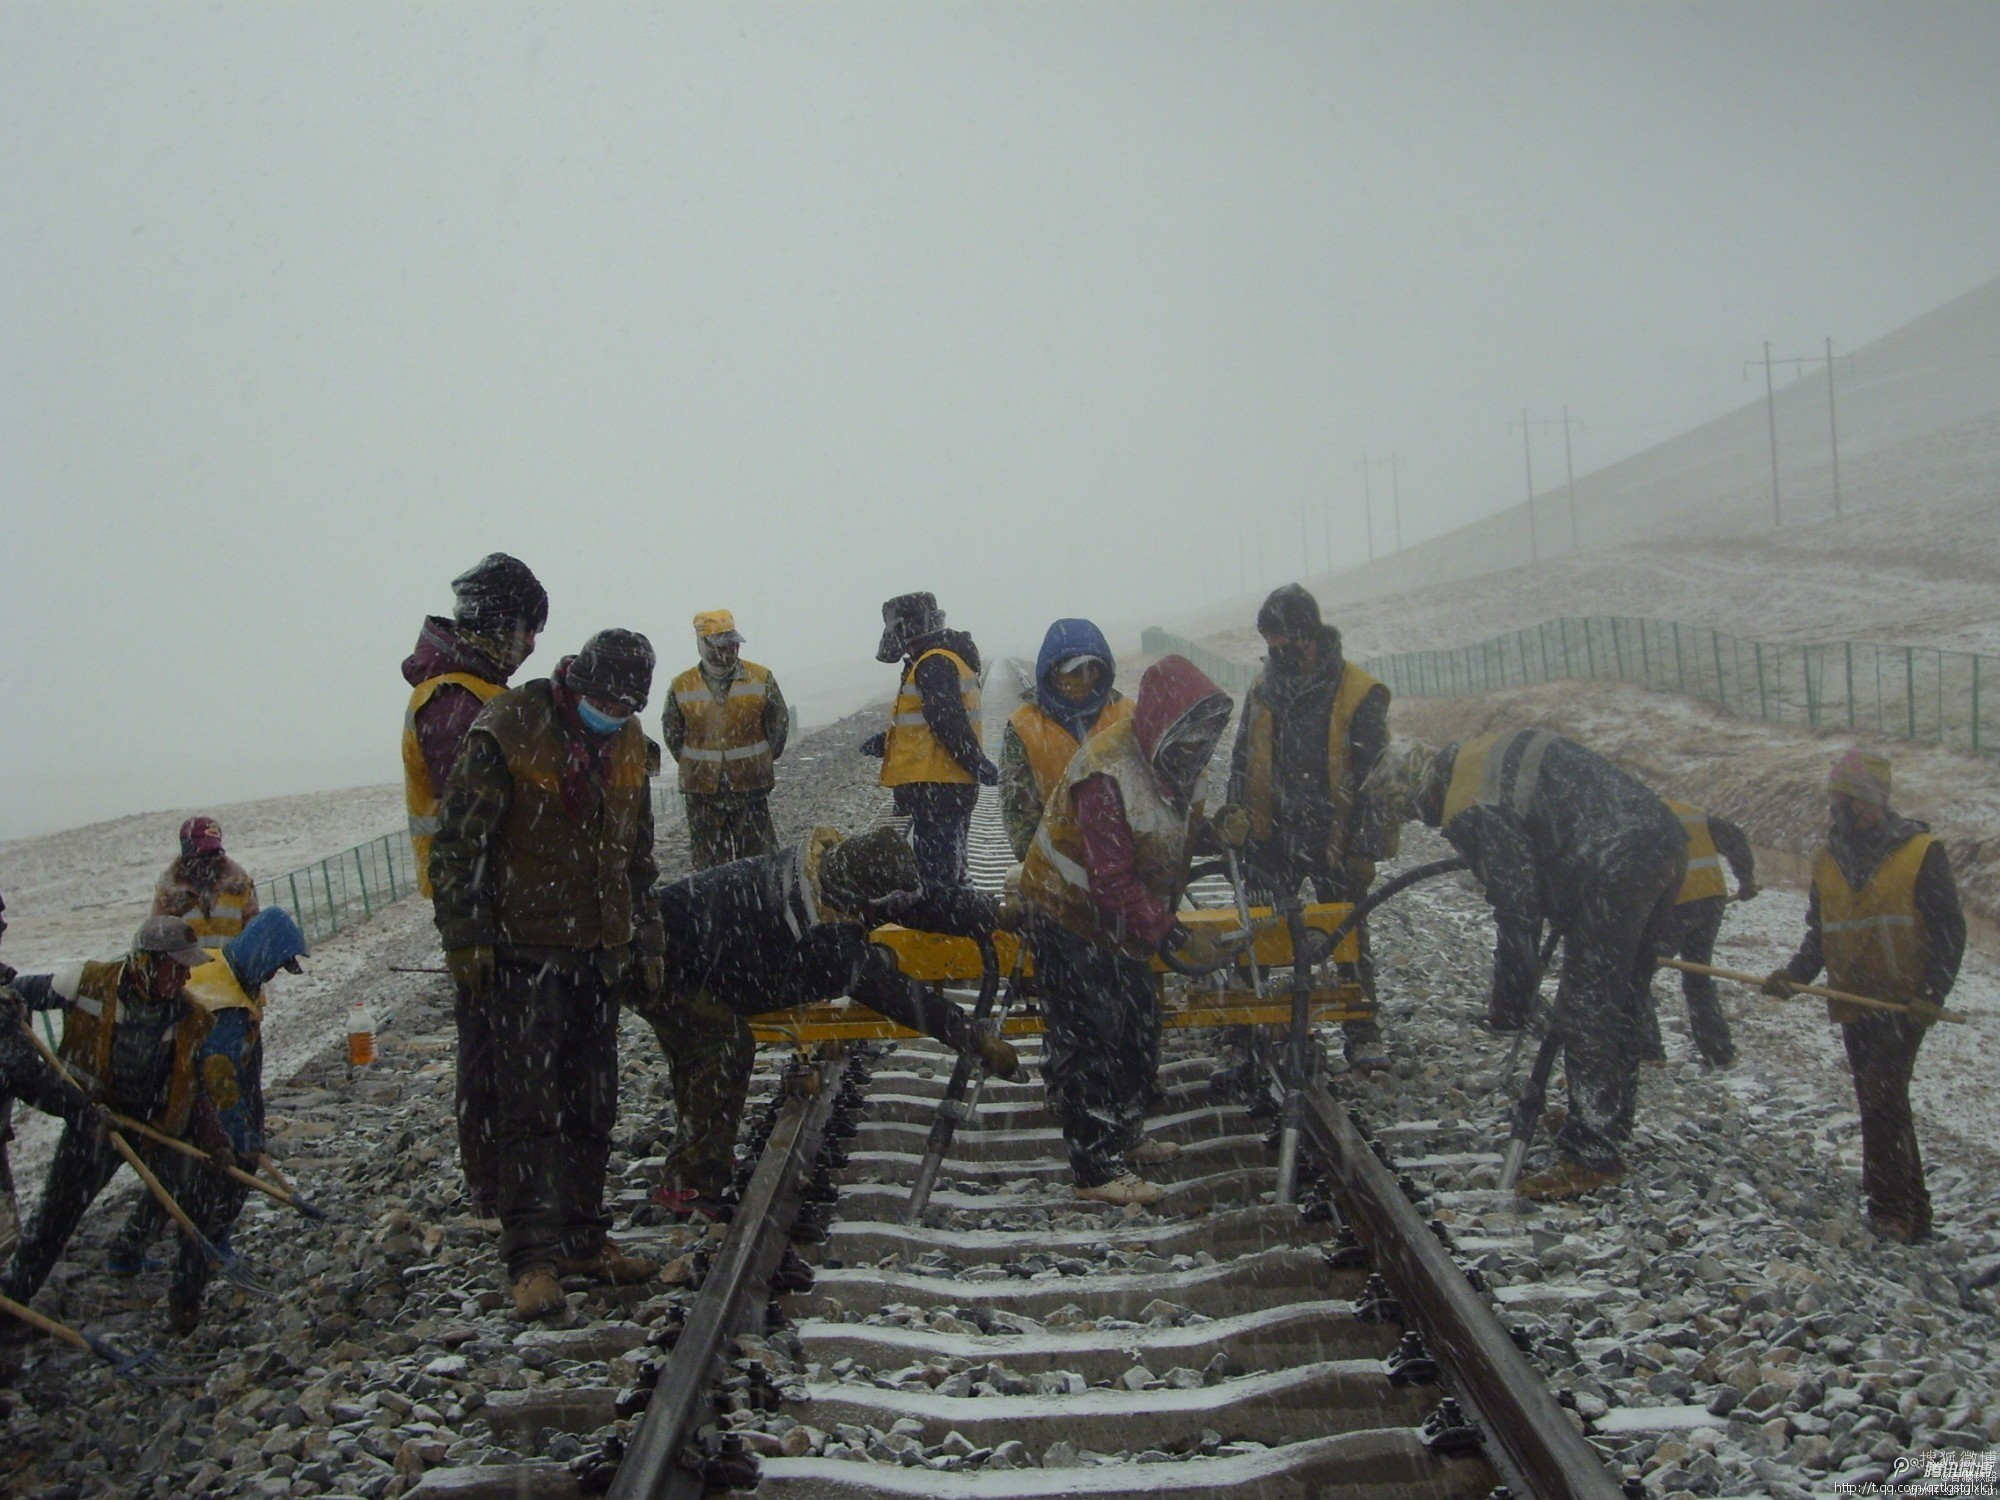 lhasa-nyingchi-railway-starts-construction-in-2014.jpg